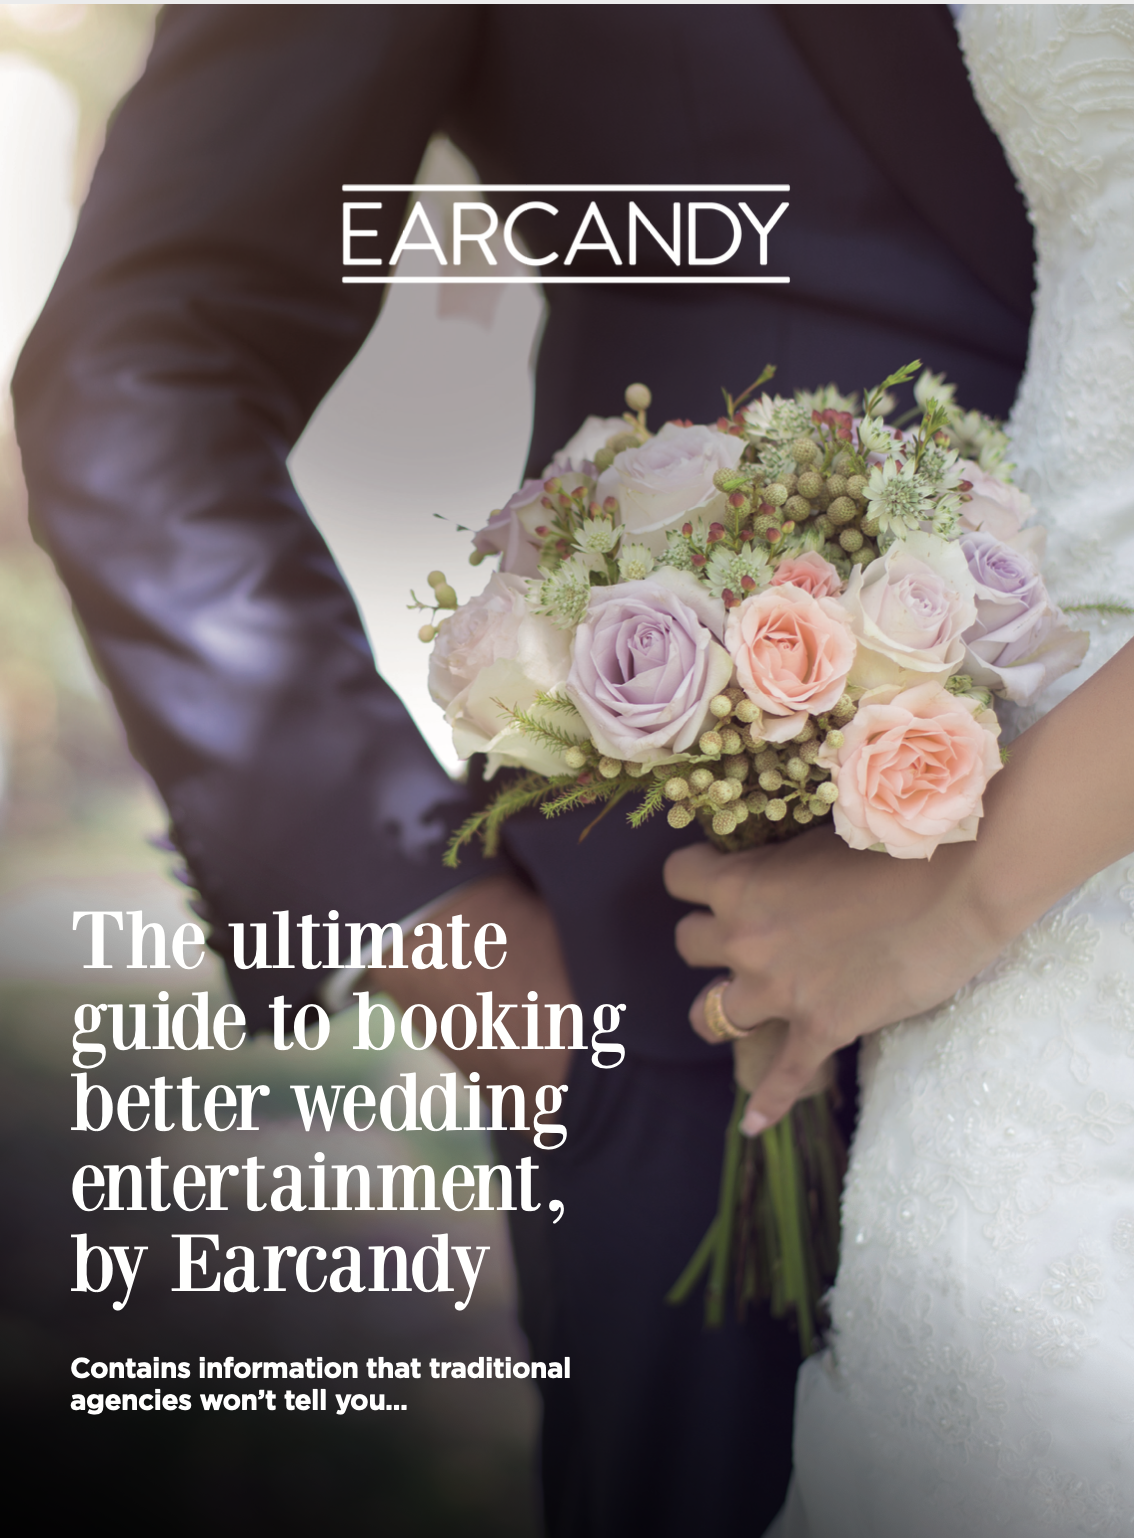 Earcandy guide to wedding entertainment